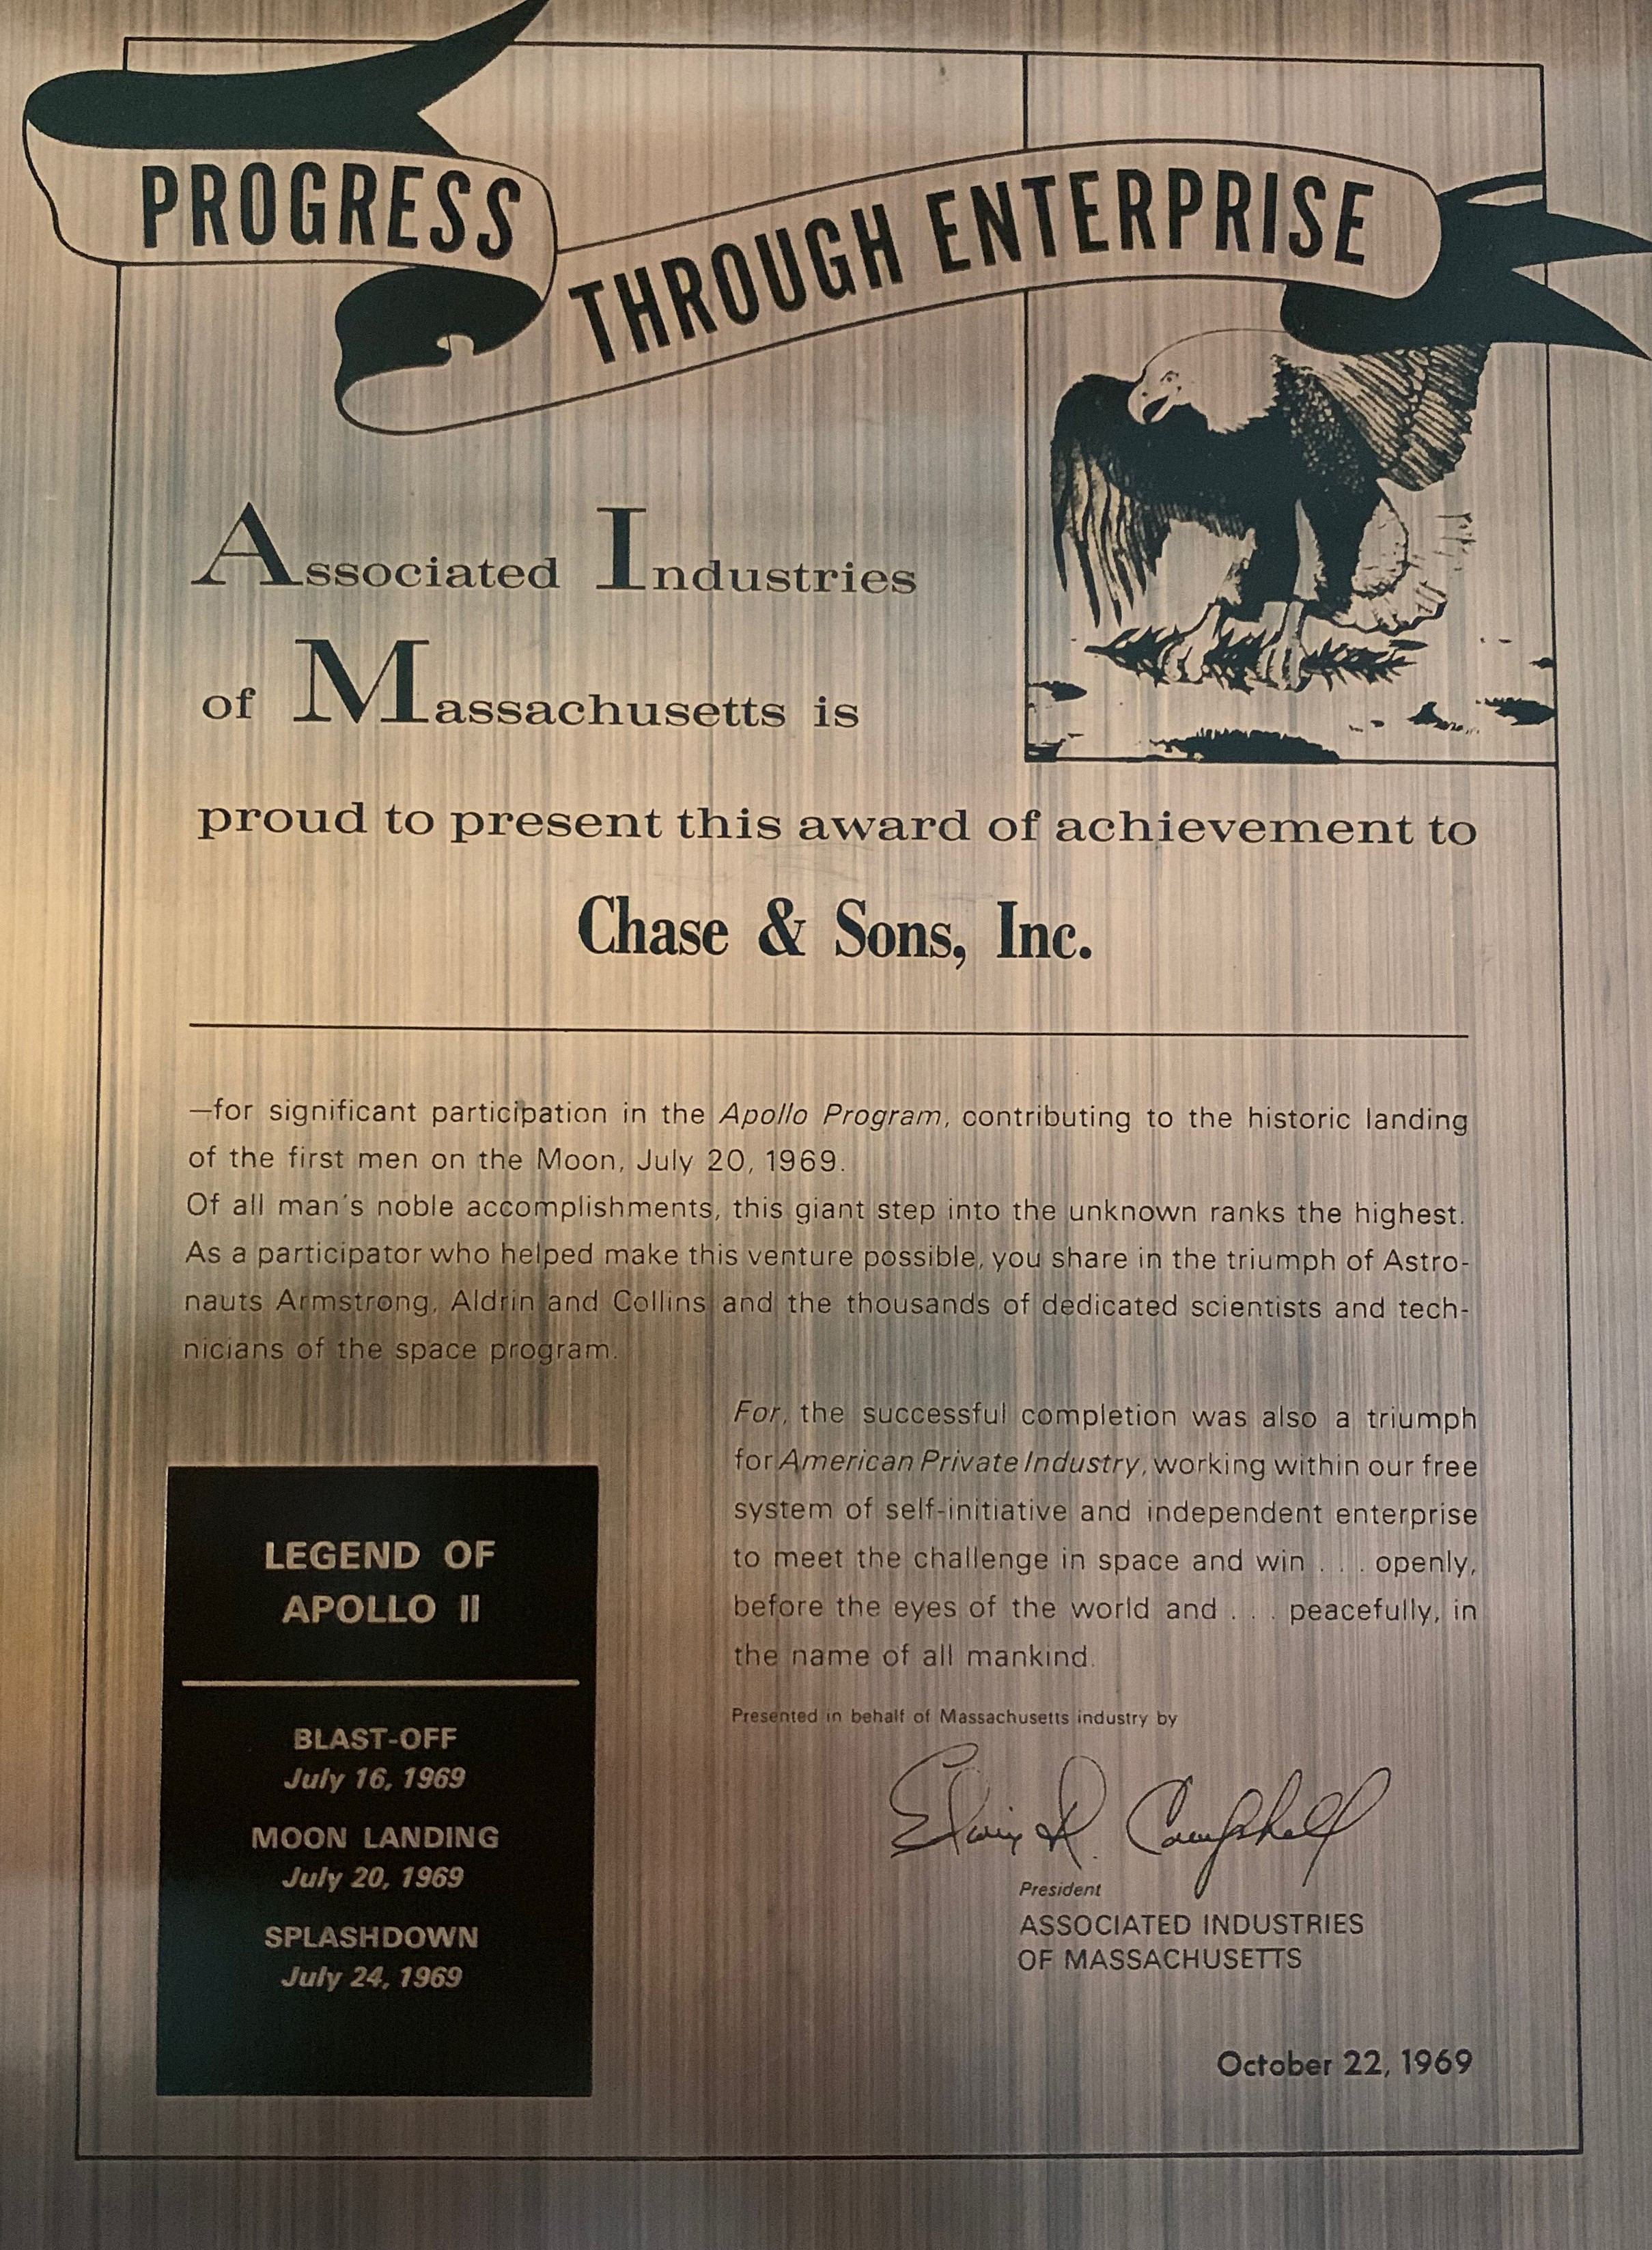 Legend of Apollo || plaque and award of achievement to Chase & Sons Inc